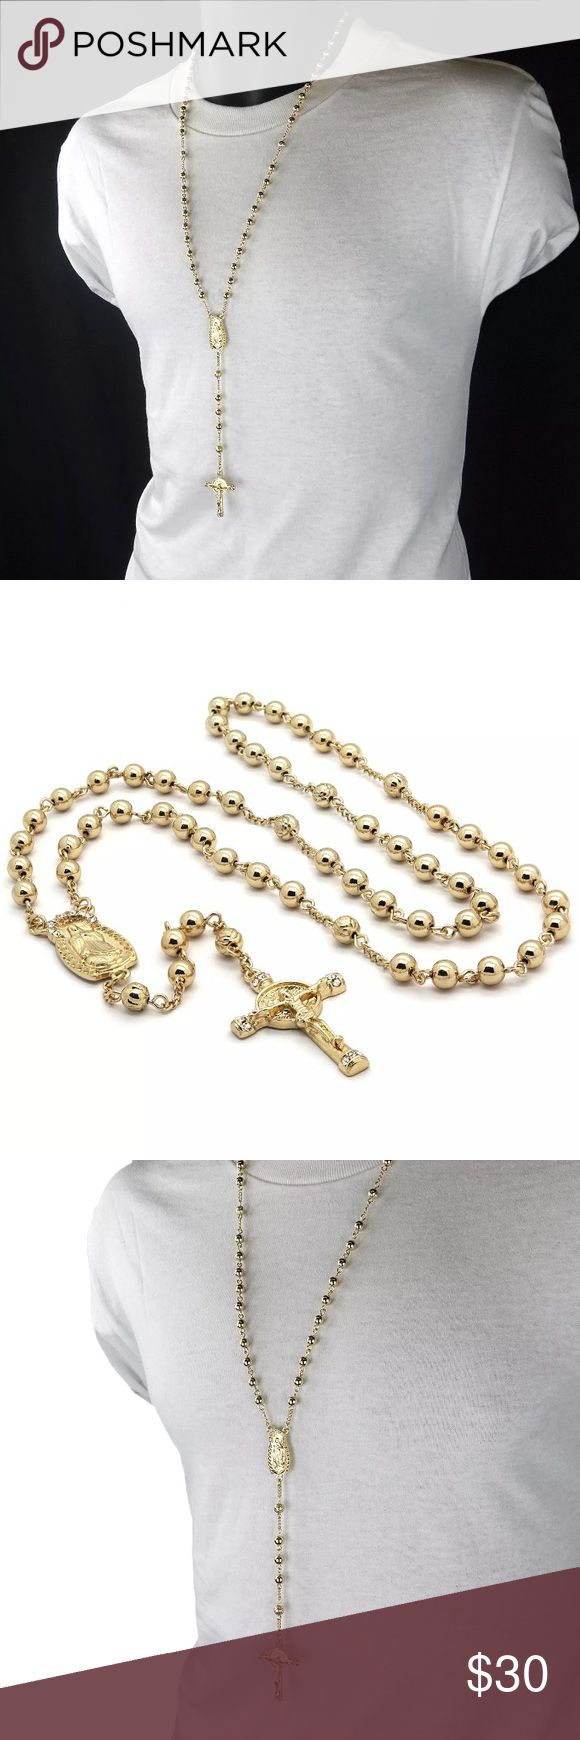 "New Gold Rosary Necklace Cross Guadalupe Chain Rosary Length: 32"" Circumference Cross Pendant Measurements: 1-3/4"" Inches x 1"" Inch Guadalupe Charm Measurements: 2"" Inches Charm to Cross Measurement: 7 Inches Shiny Gold plated. Item is BRAND NEW. Jewelry Necklaces"